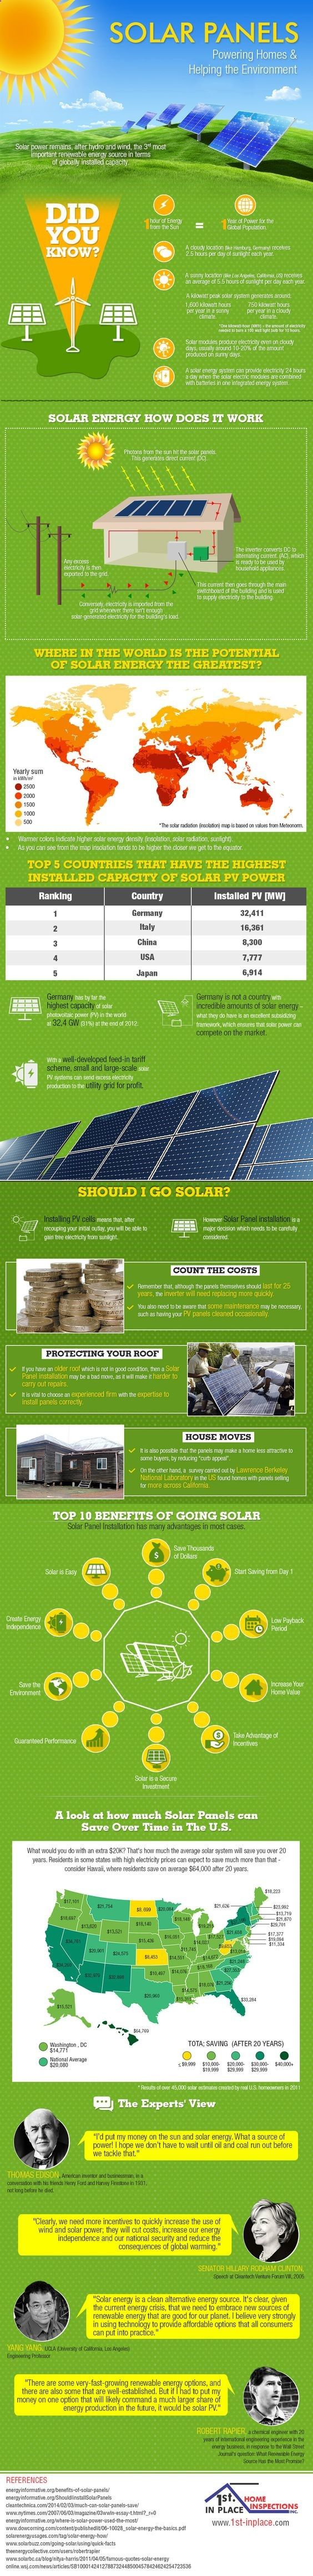 The 76 Best Nergie Images On Pinterest Renewable Energy Electric Battery Backup Circuit Group Picture Image By Tag Keywordpictures Advantages Of Solar Infographic Blog 123solarpower